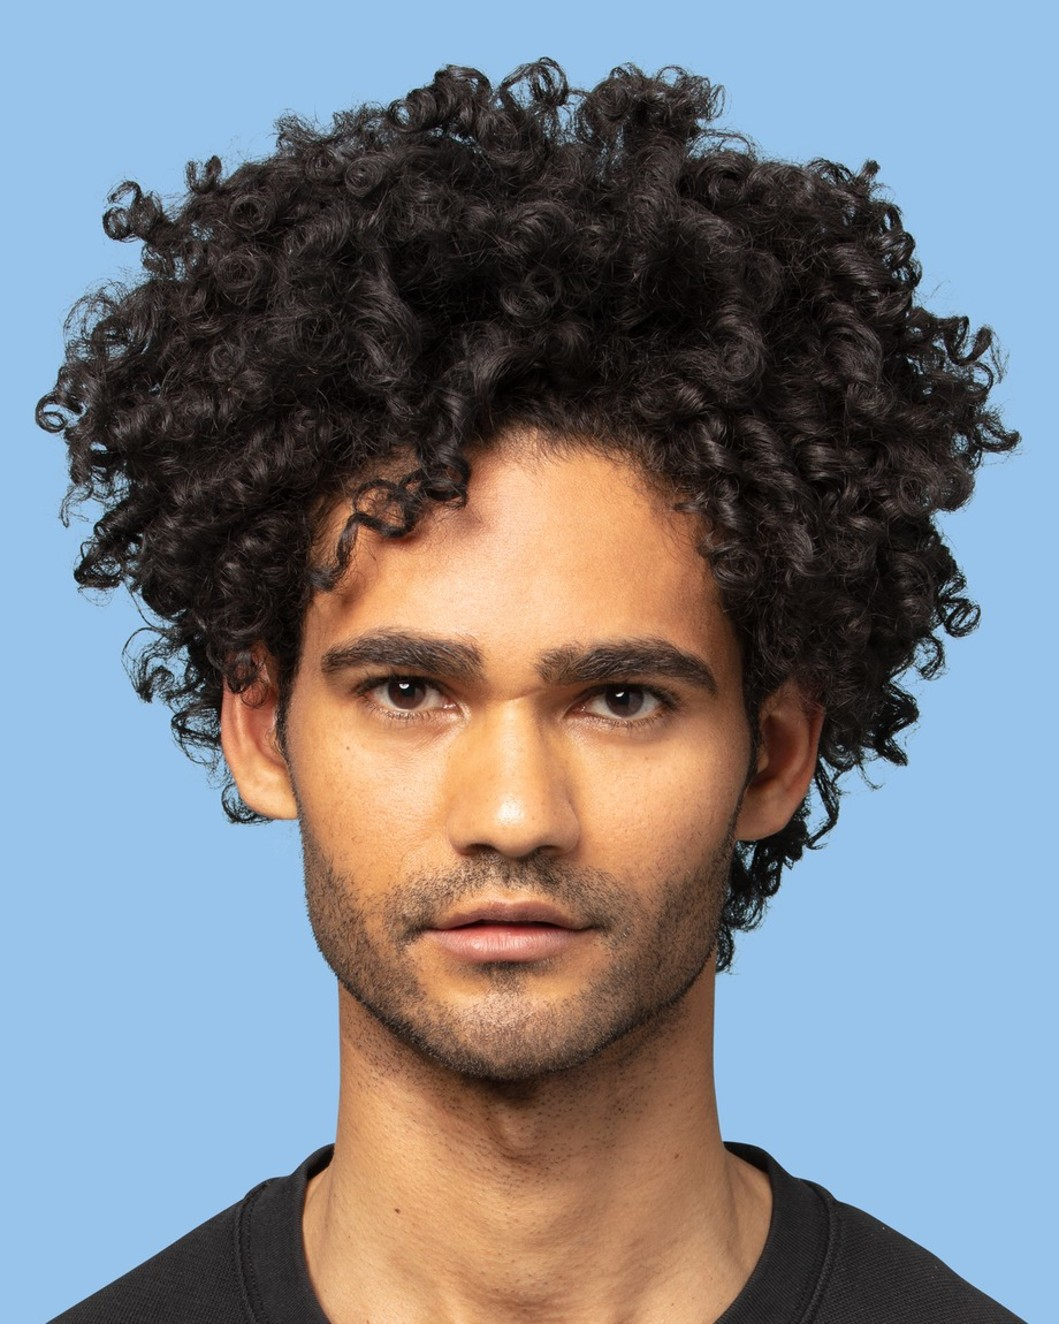 Guy with curly hair using the product